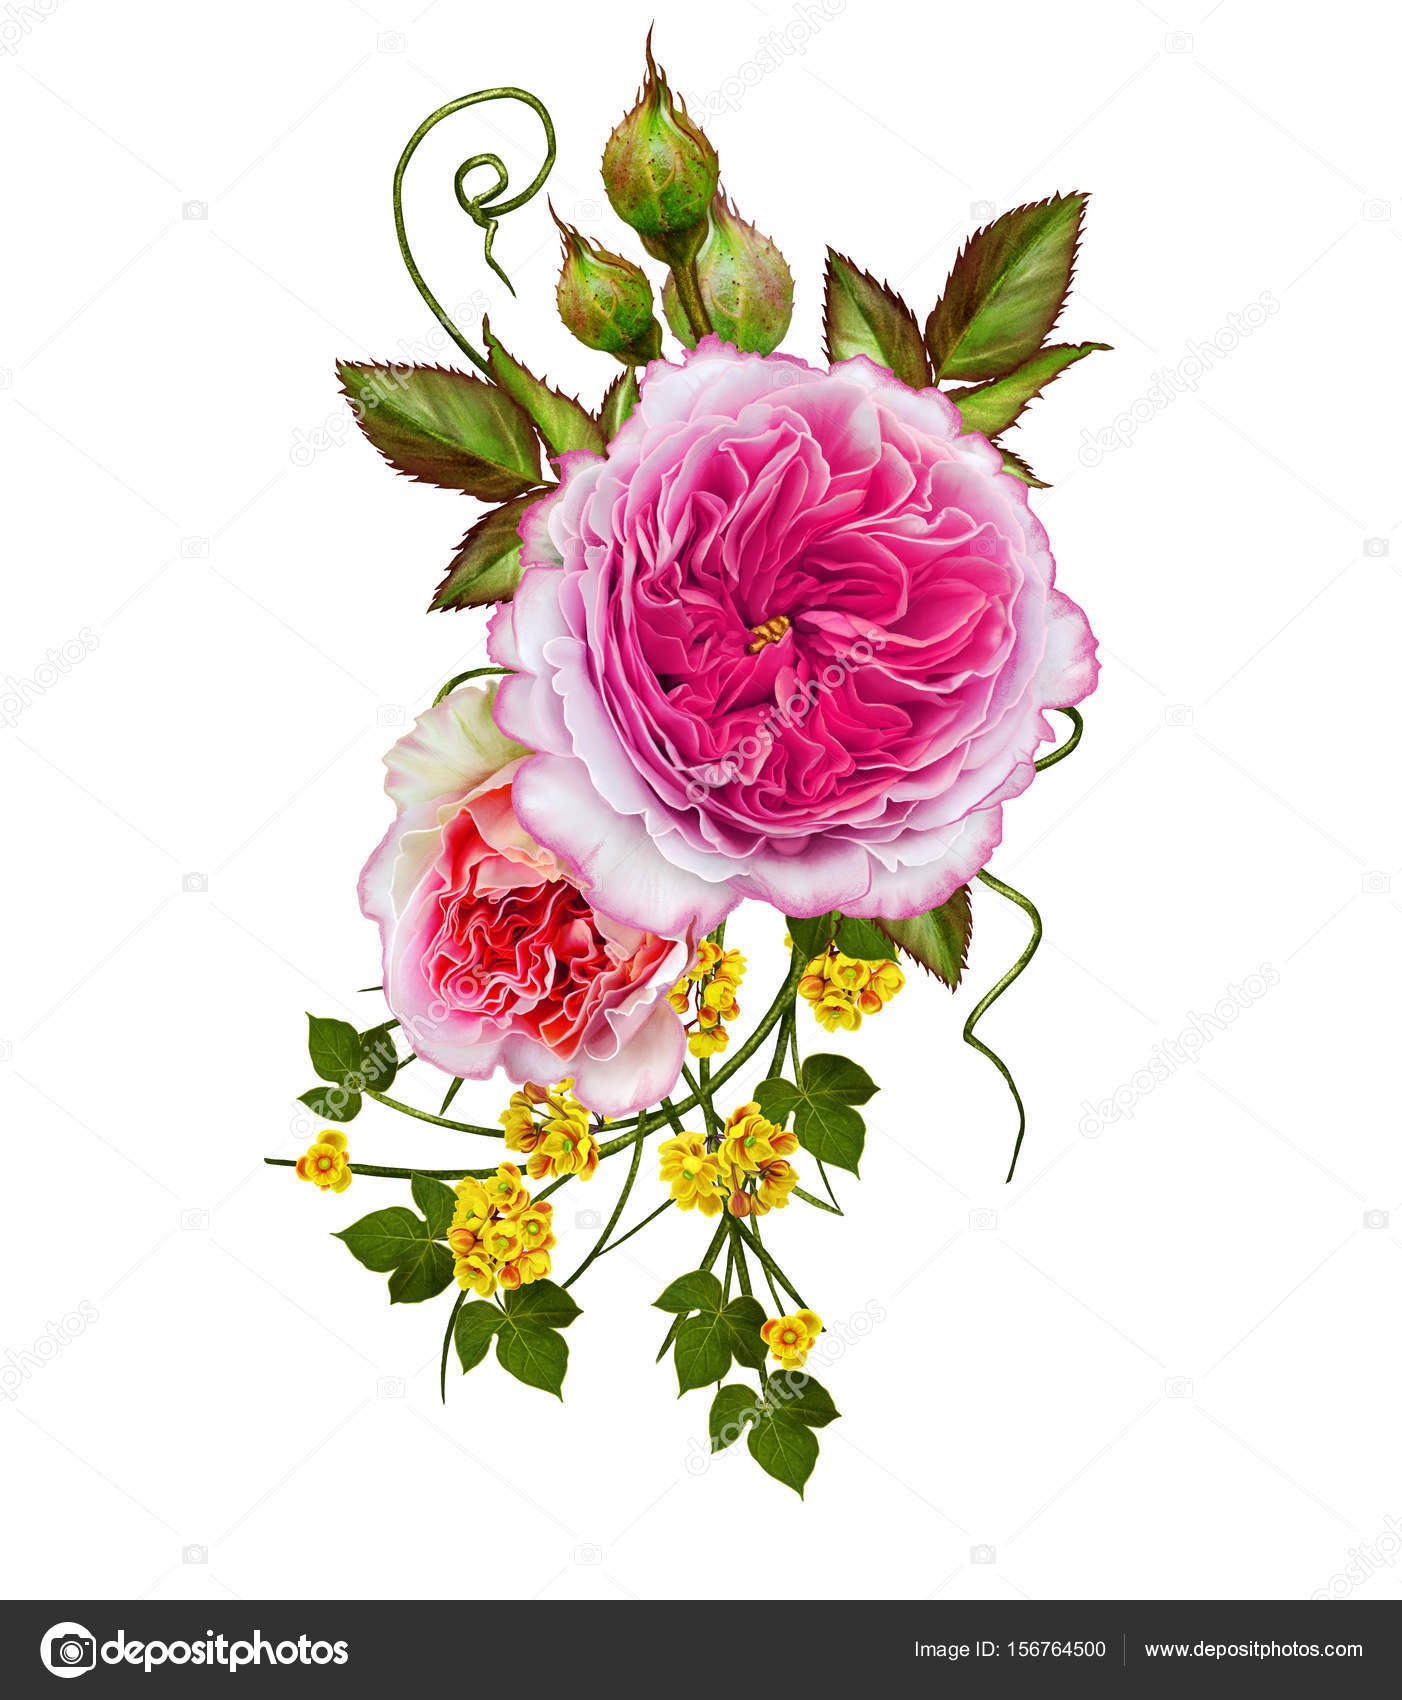 Flower Arrangement Of Delicate Pink Roses Isolated On White